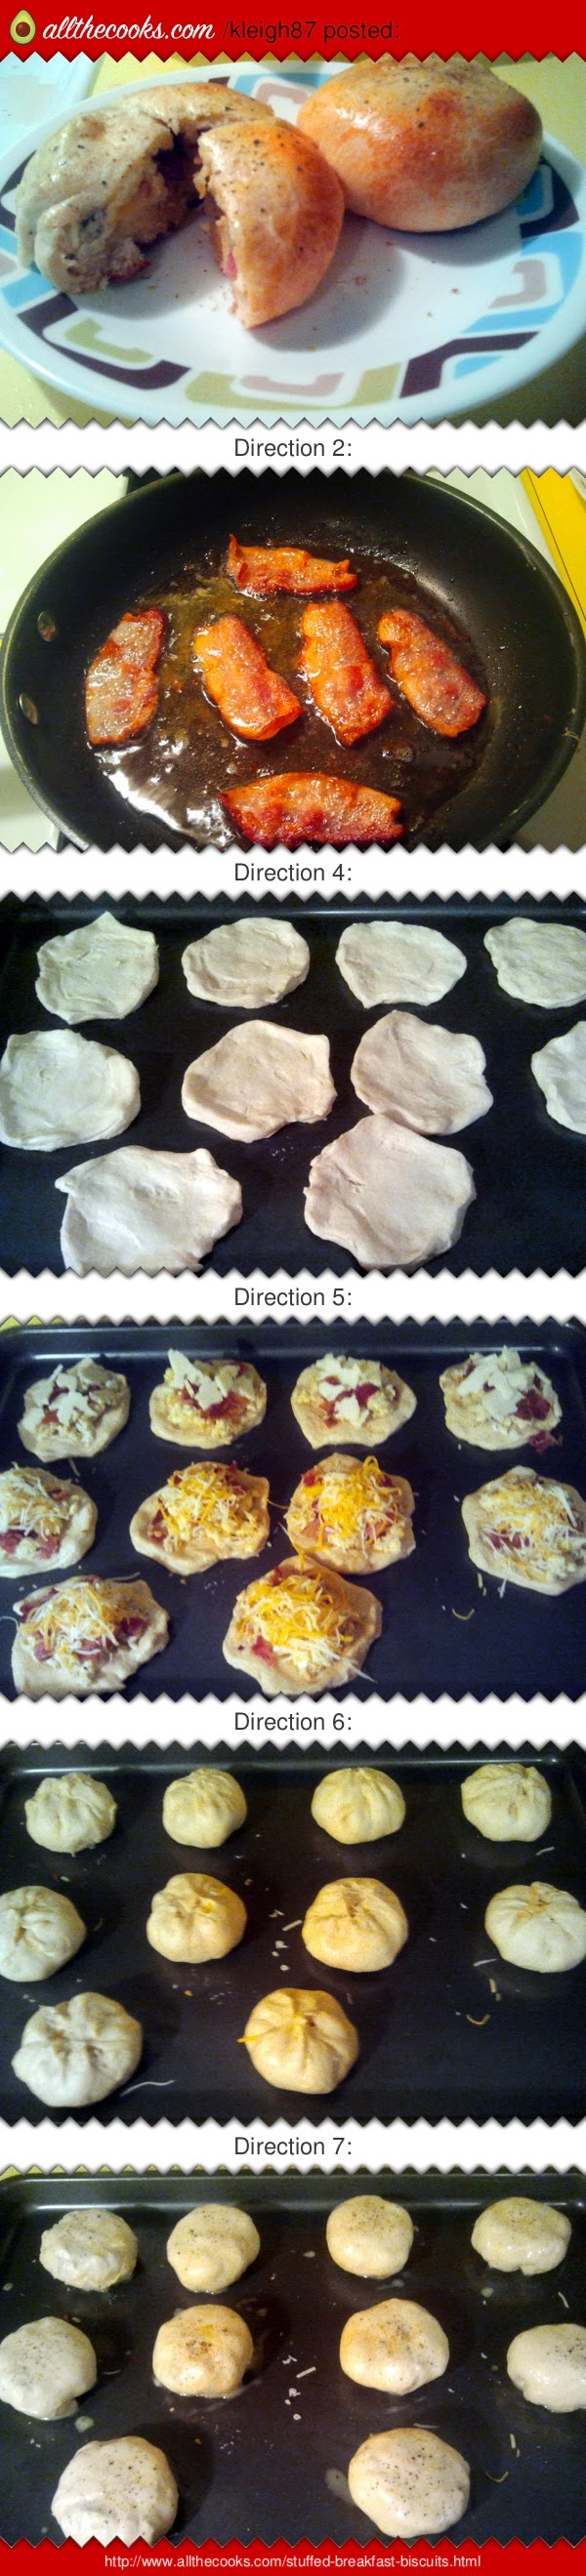 """Stuffed Breakfast Biscuits! 4.79 stars, 24 reviews. """"My family loved them!  Can be made with a variety of ingredients :  sausage, hashbrowns, etc.  I made some with shredded cheddar cheese and some with pepper jack for the extra kick.  The biscuits can easily be frozen and reheated in the microwave."""" @allthecooks #recipe"""